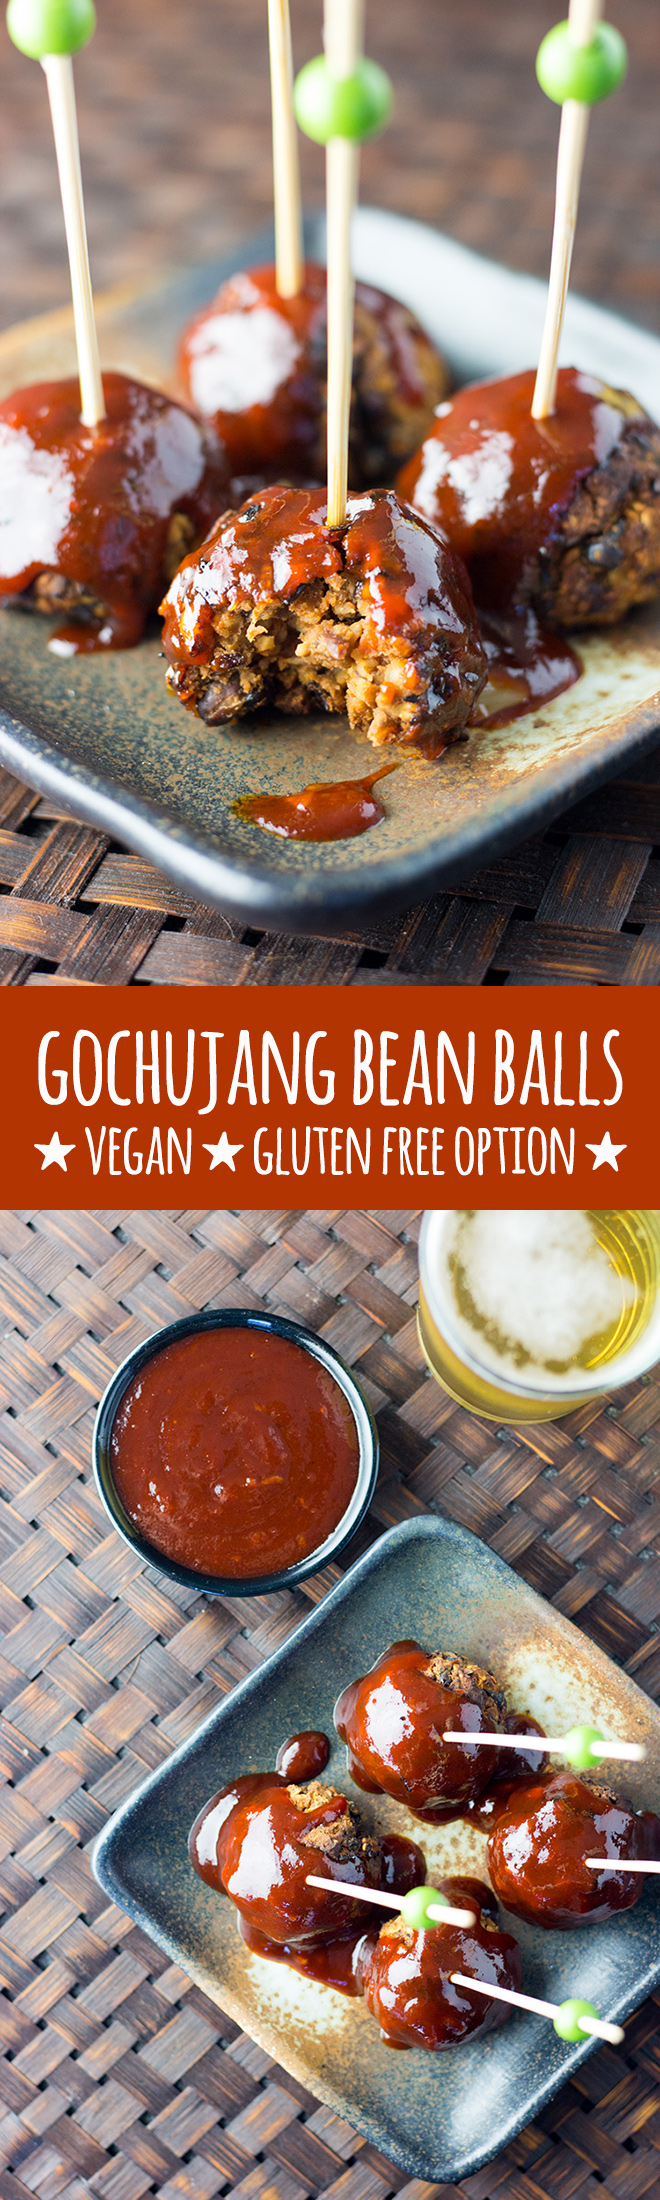 Gochujang is the star of the show in thisfull on, flavour packed, Korean style take on vegan meat balls made with black beans, oats, walnuts and chia seeds. These bean balls are perfect for parties and social gatherings. Gluten free option available.